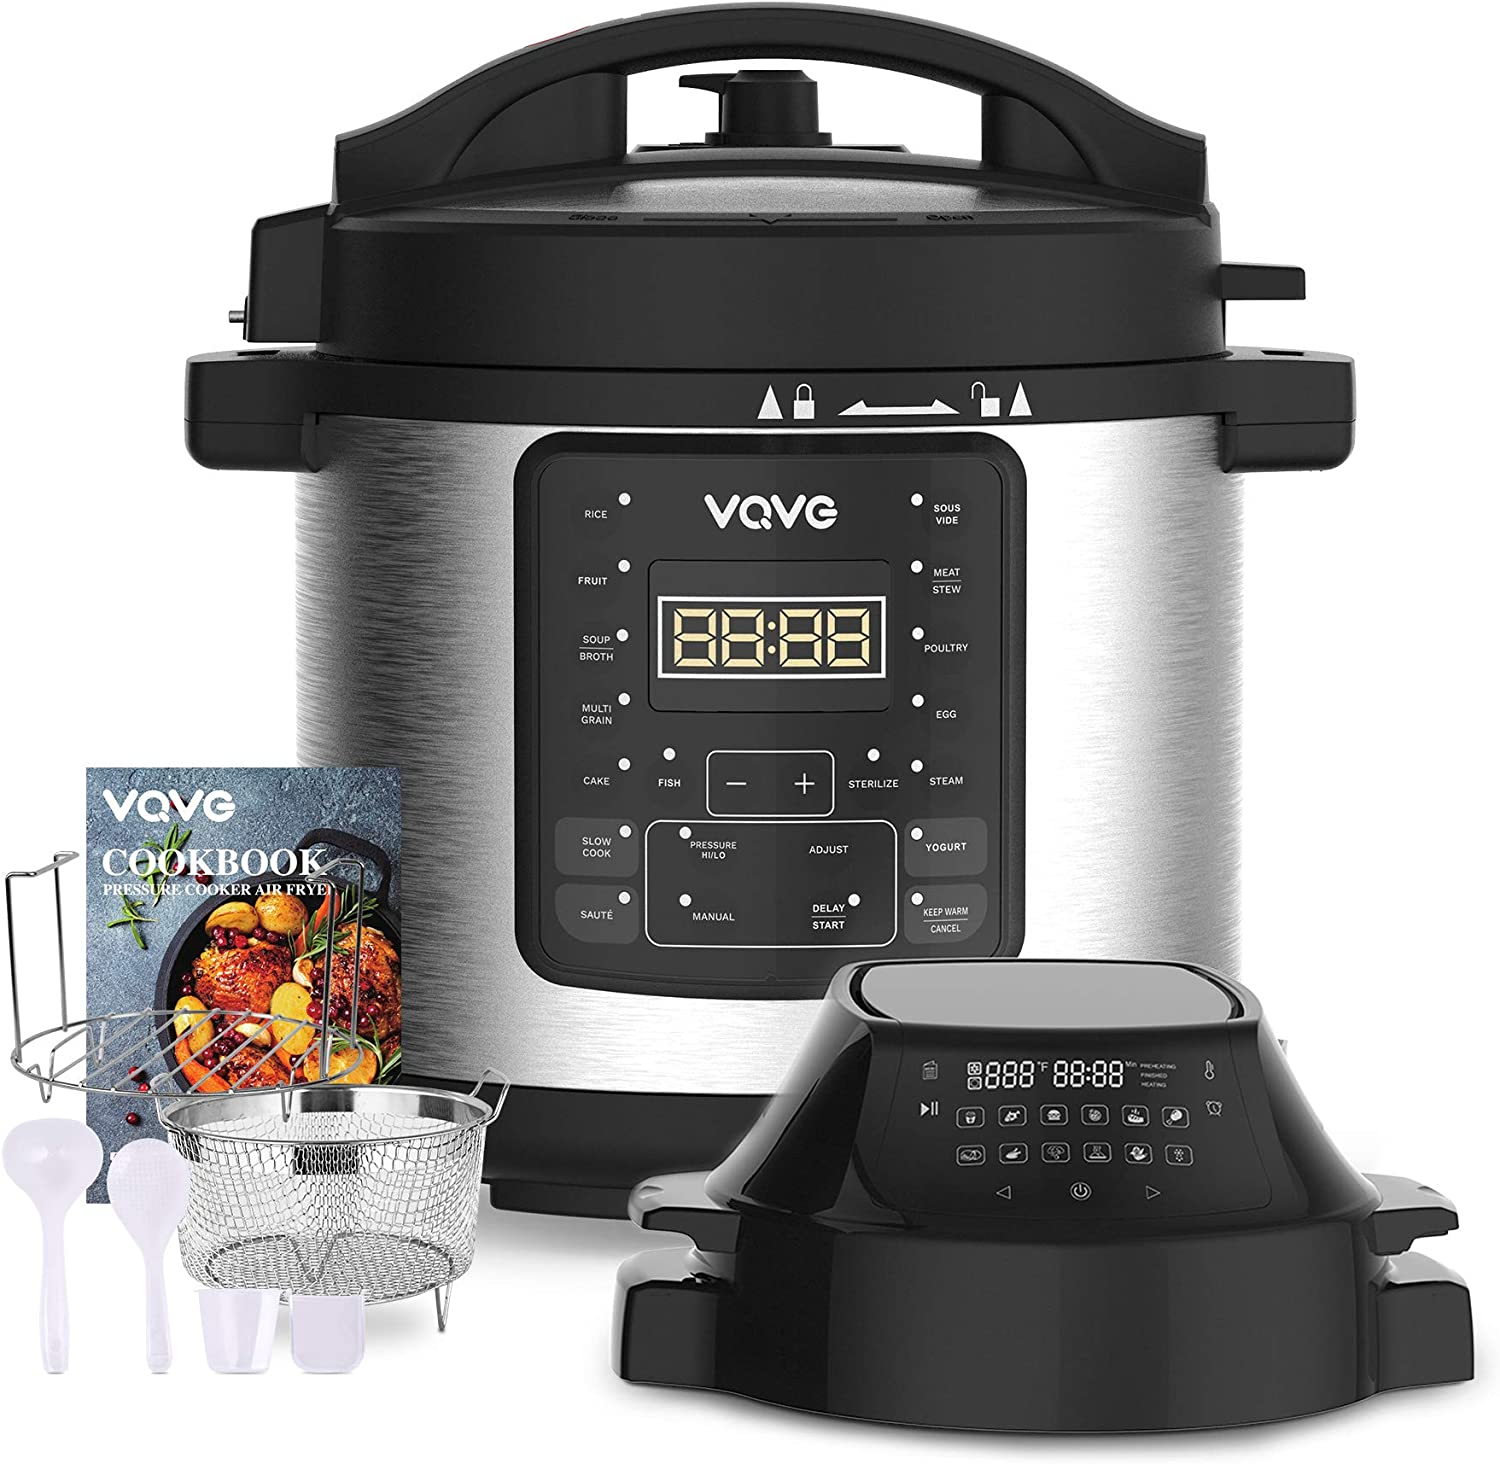 Pressure Cooker Air Fryer Combo - VQVG All-in-1 Multi-Cooker with Pressure & Crisp Lids Slow Cooker Steamer Air Fryer Broil Dehydrate and More 6 Quart Capacity Included Recipe Book & Accessories